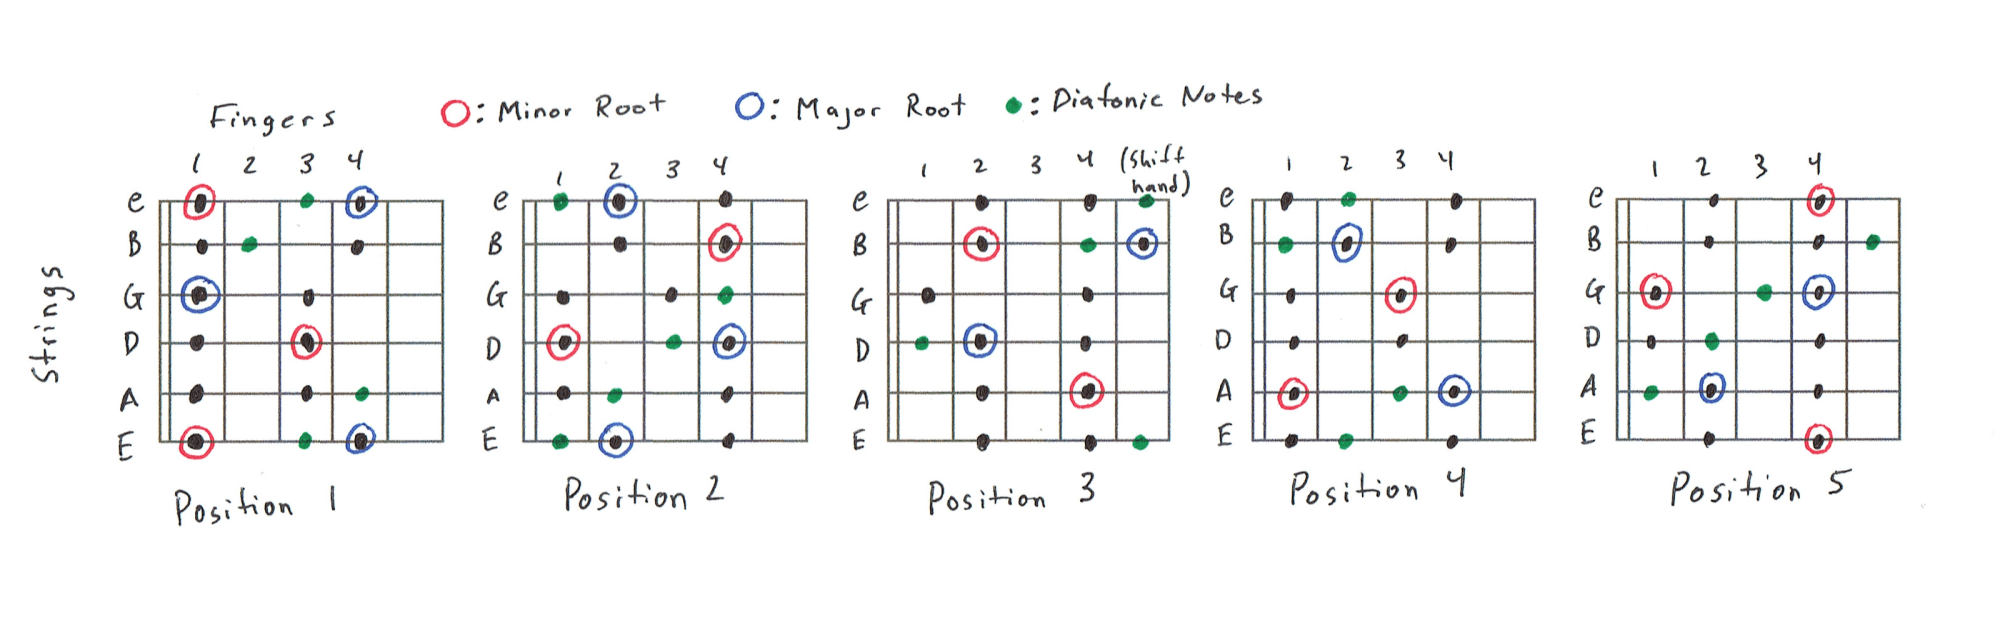 hight resolution of 5 position diatonic scale charts